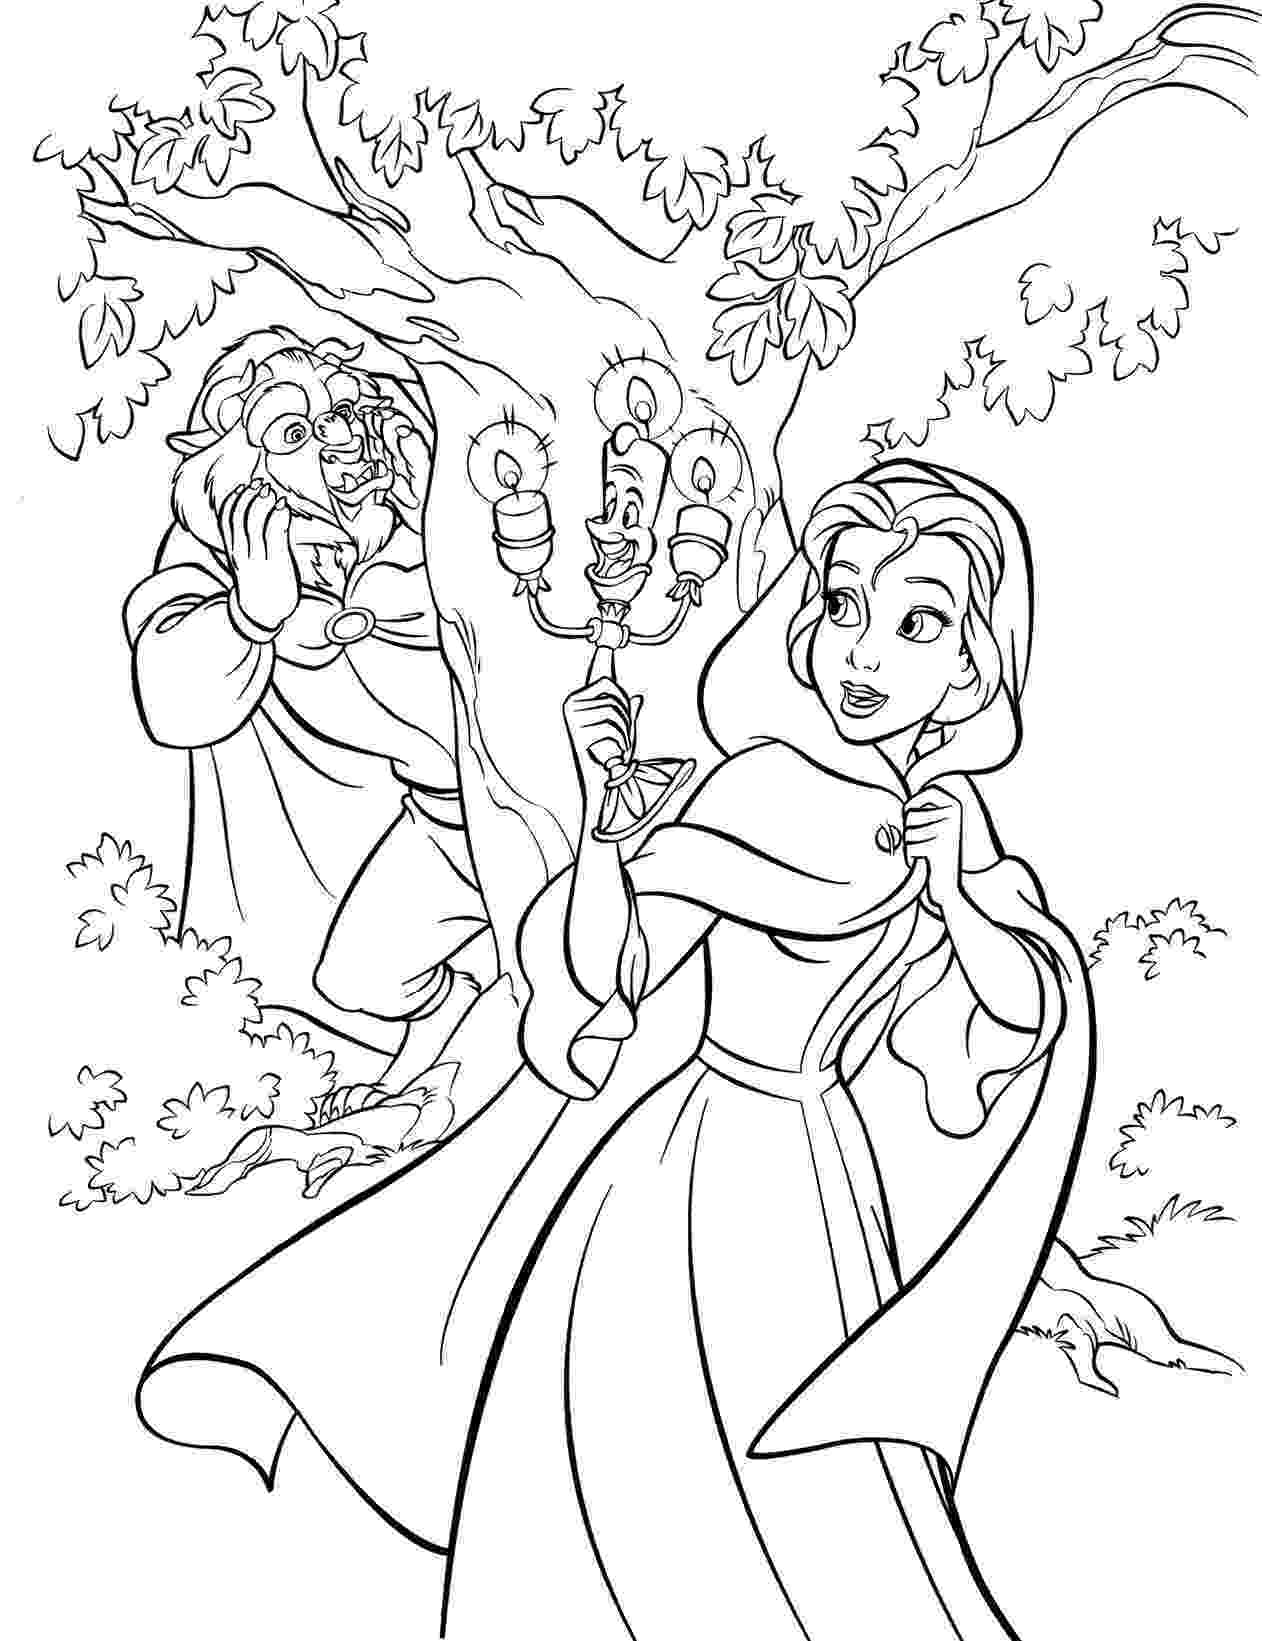 beauty and the beast pictures to colour everything fun for your child pictures beauty and beast to the colour